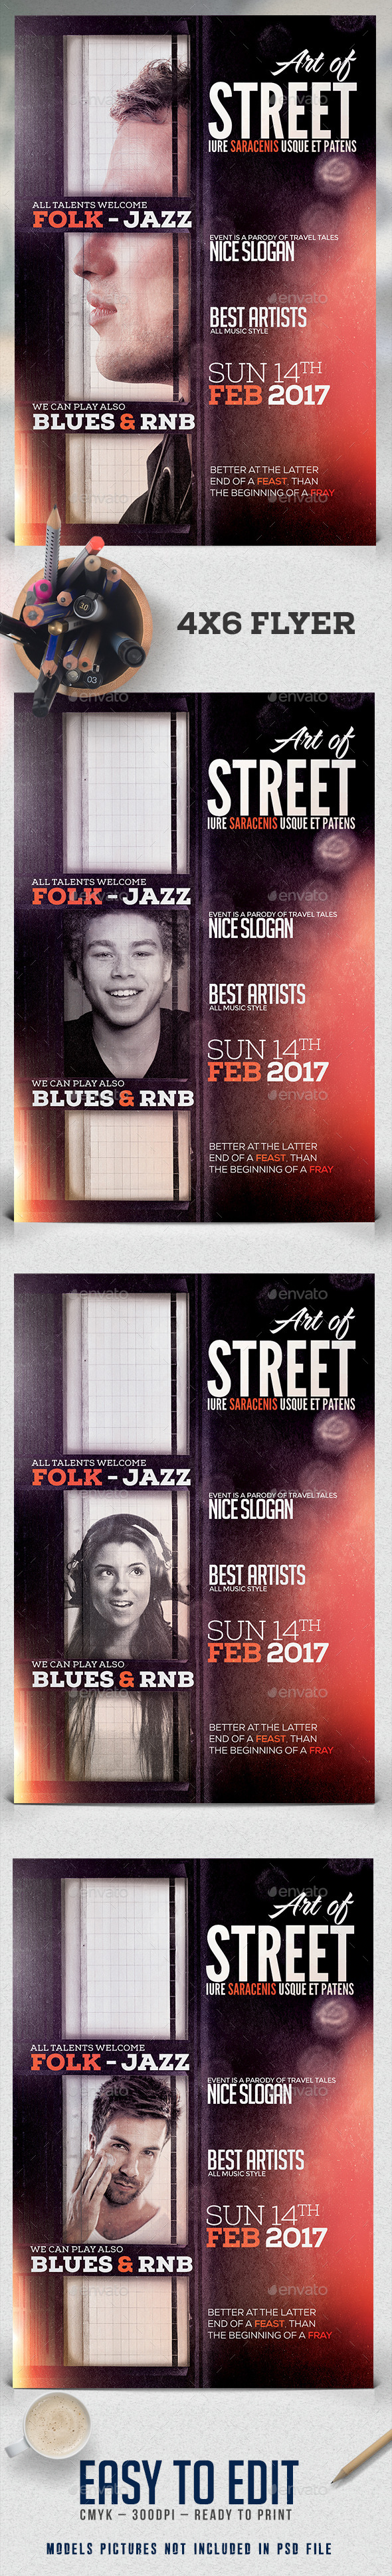 Art Of Street Flyer Template - Clubs & Parties Events